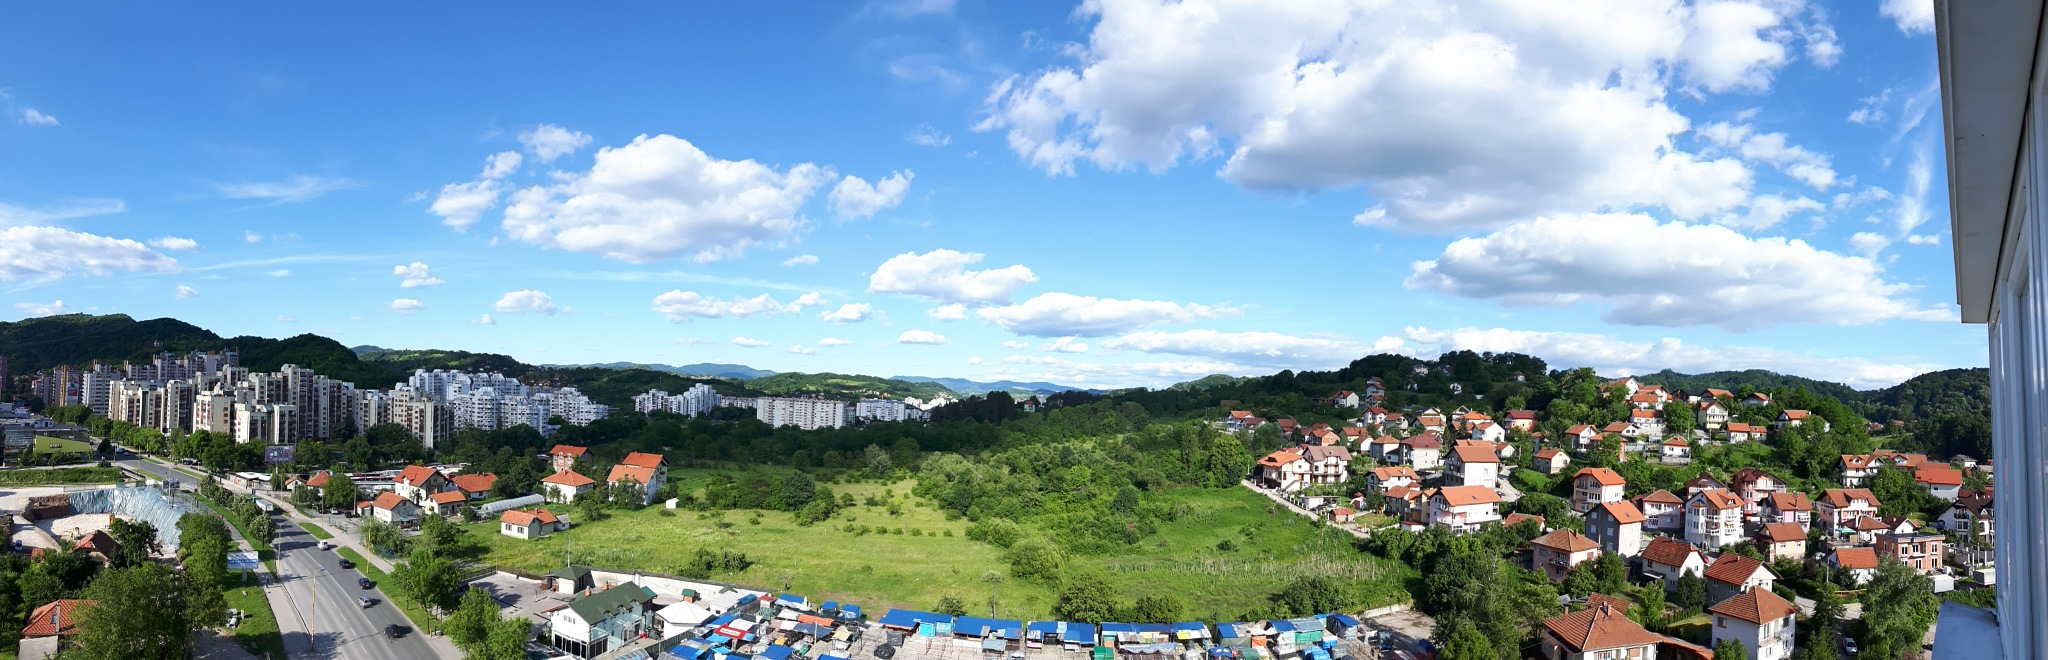 Tuzla east view panorama by Mevludin_Hasanovic